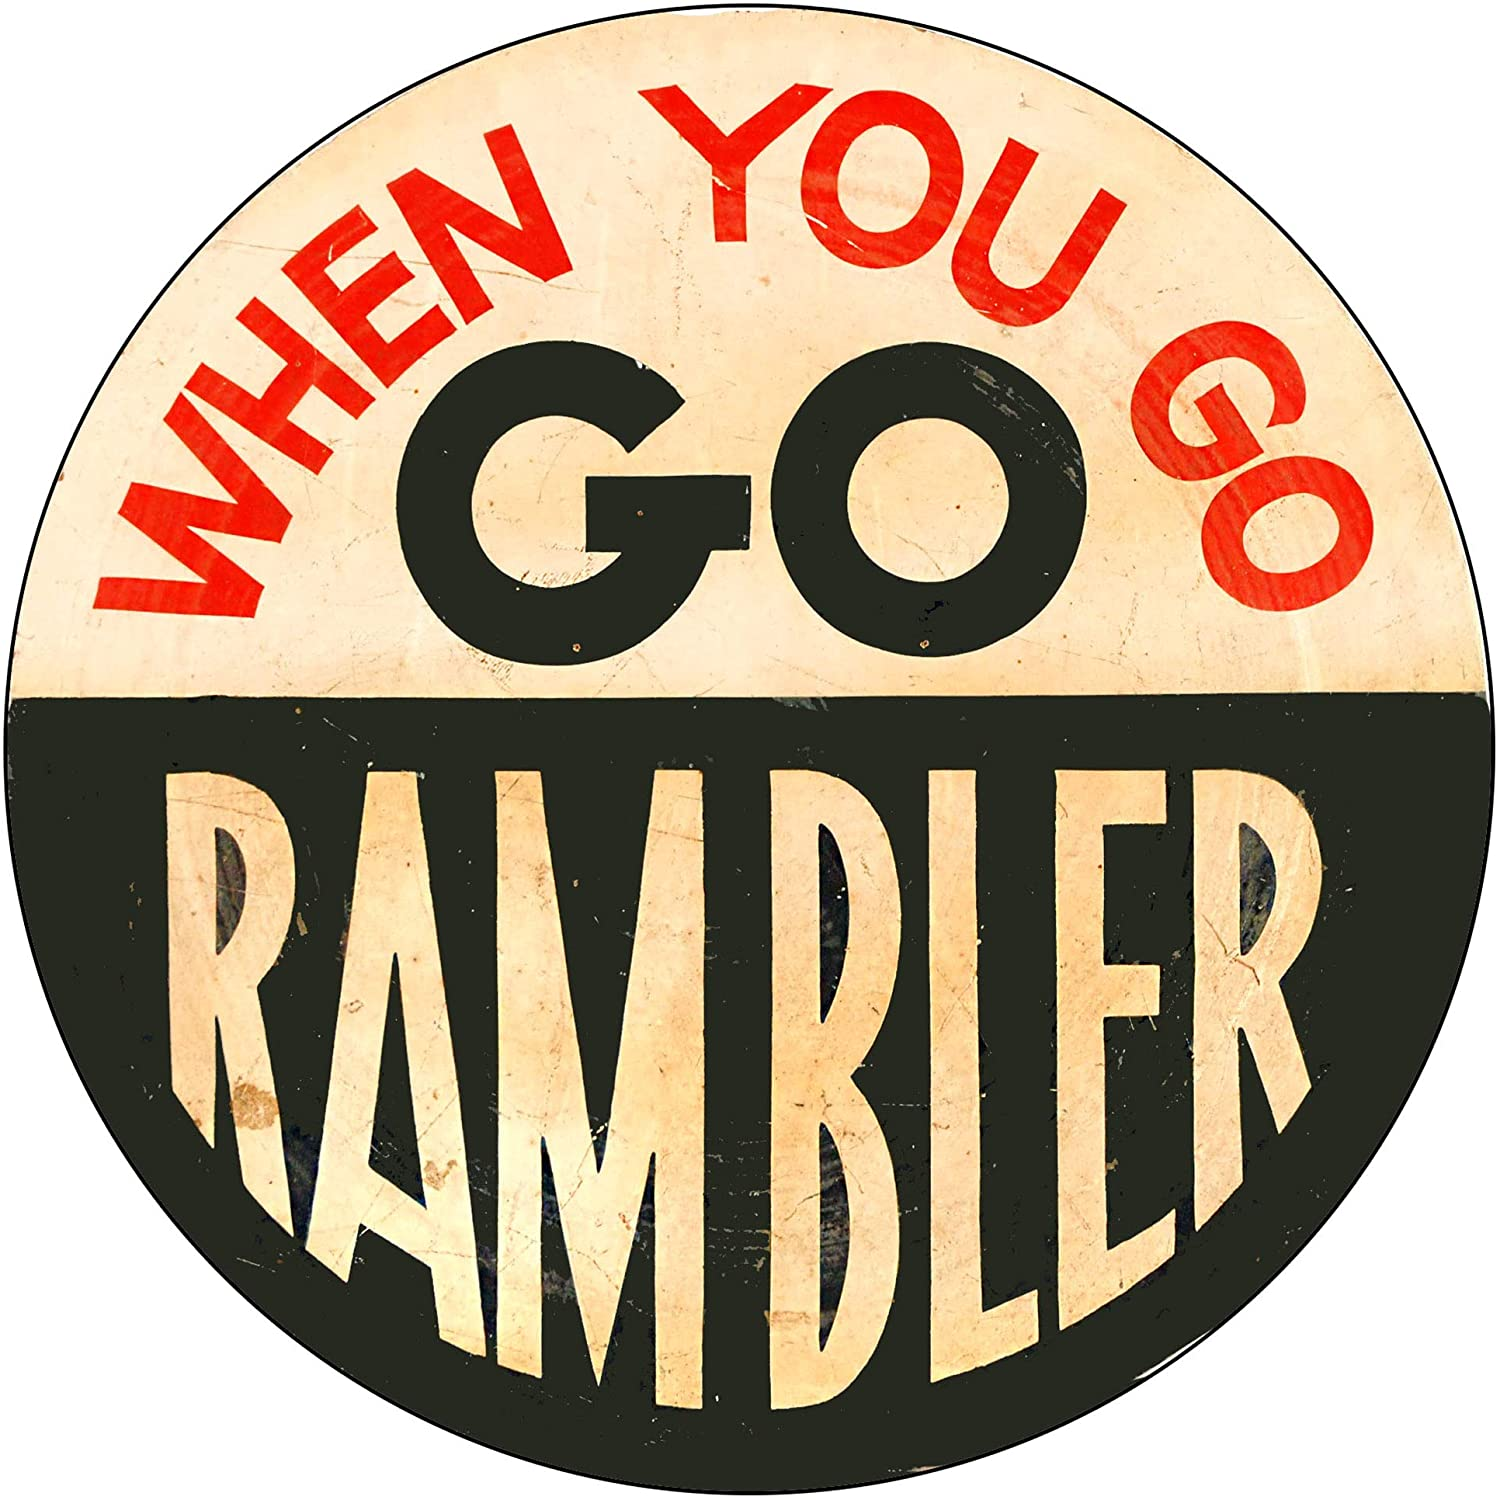 Brotherhood Vintage Gas Sign Reproduction Vintage Metal Signs Round Metal Tin Sign for Garage and Home 8 Inch Diameter – When You Go Go Rambler